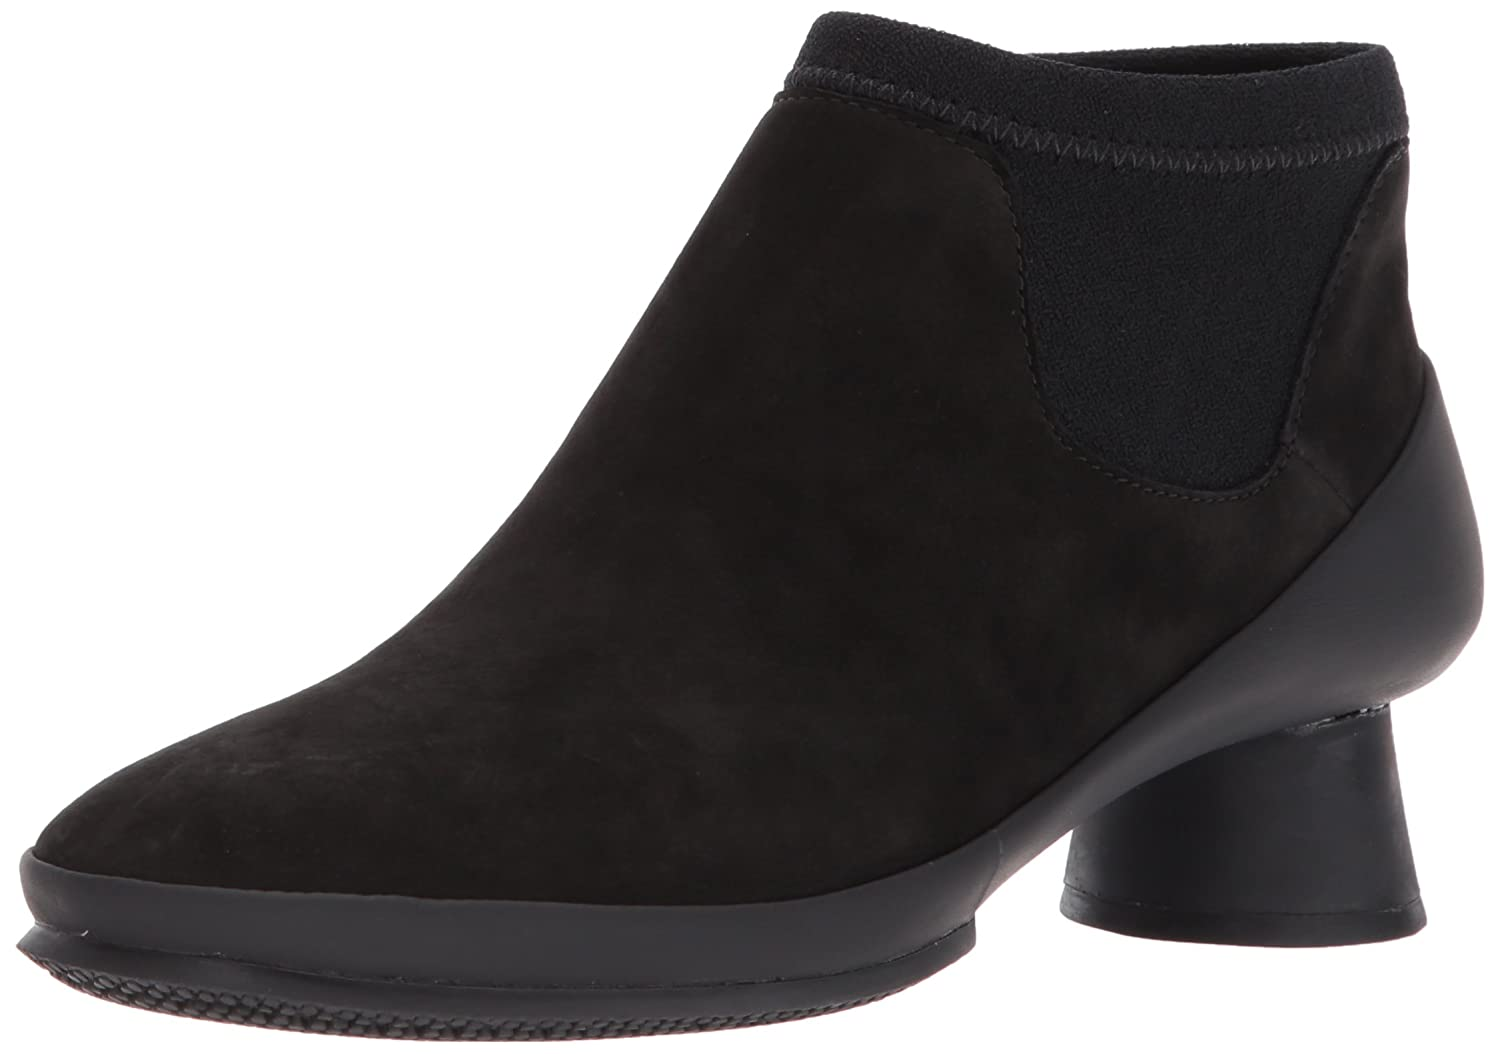 Camper Women's Alright K400218 Fashion Boot B01MRBJCEO 39 M EU (9 US)|Black Suede